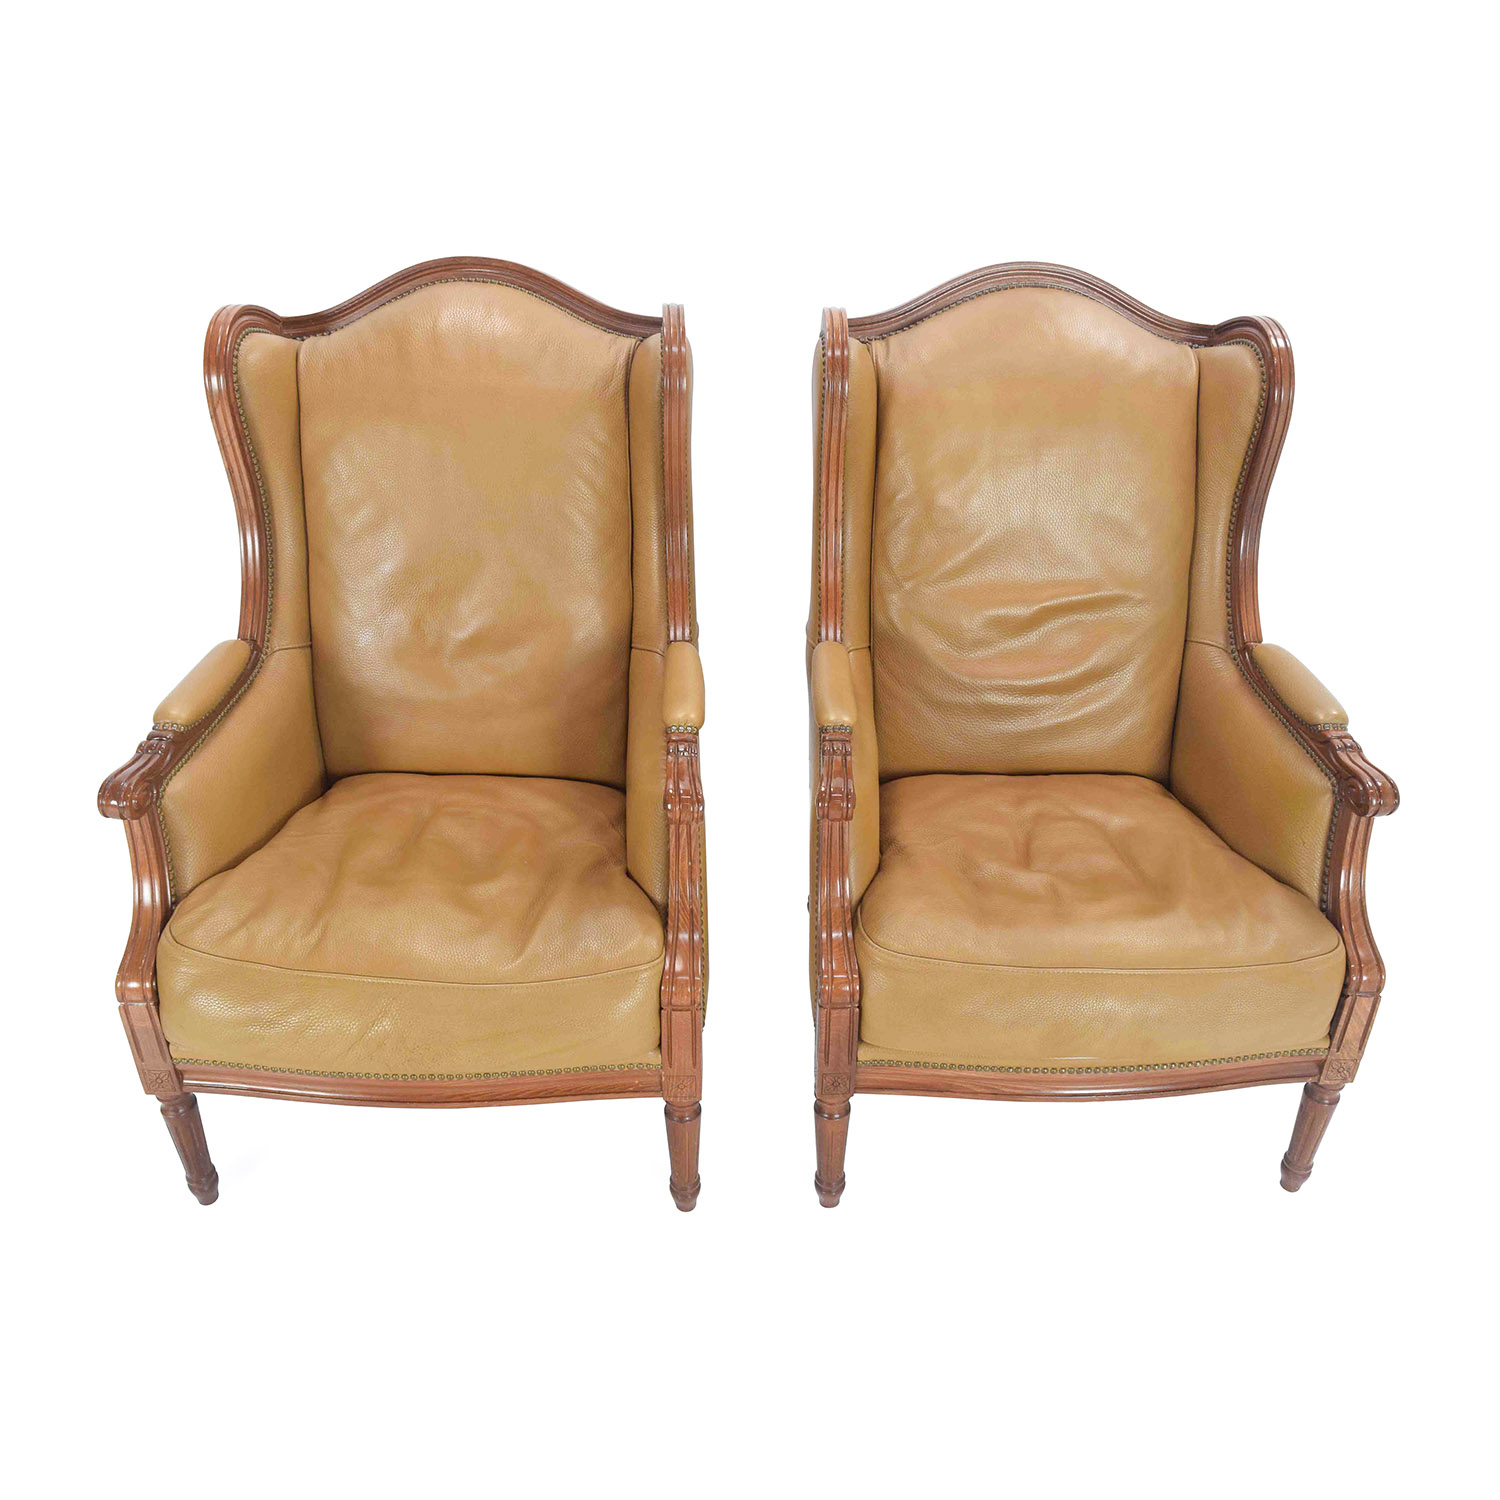 Antique Antique Leather Chairs coupon - 90% OFF - Lazy Boy Lazy Boy Multi-Colored Club Chairs / Chairs